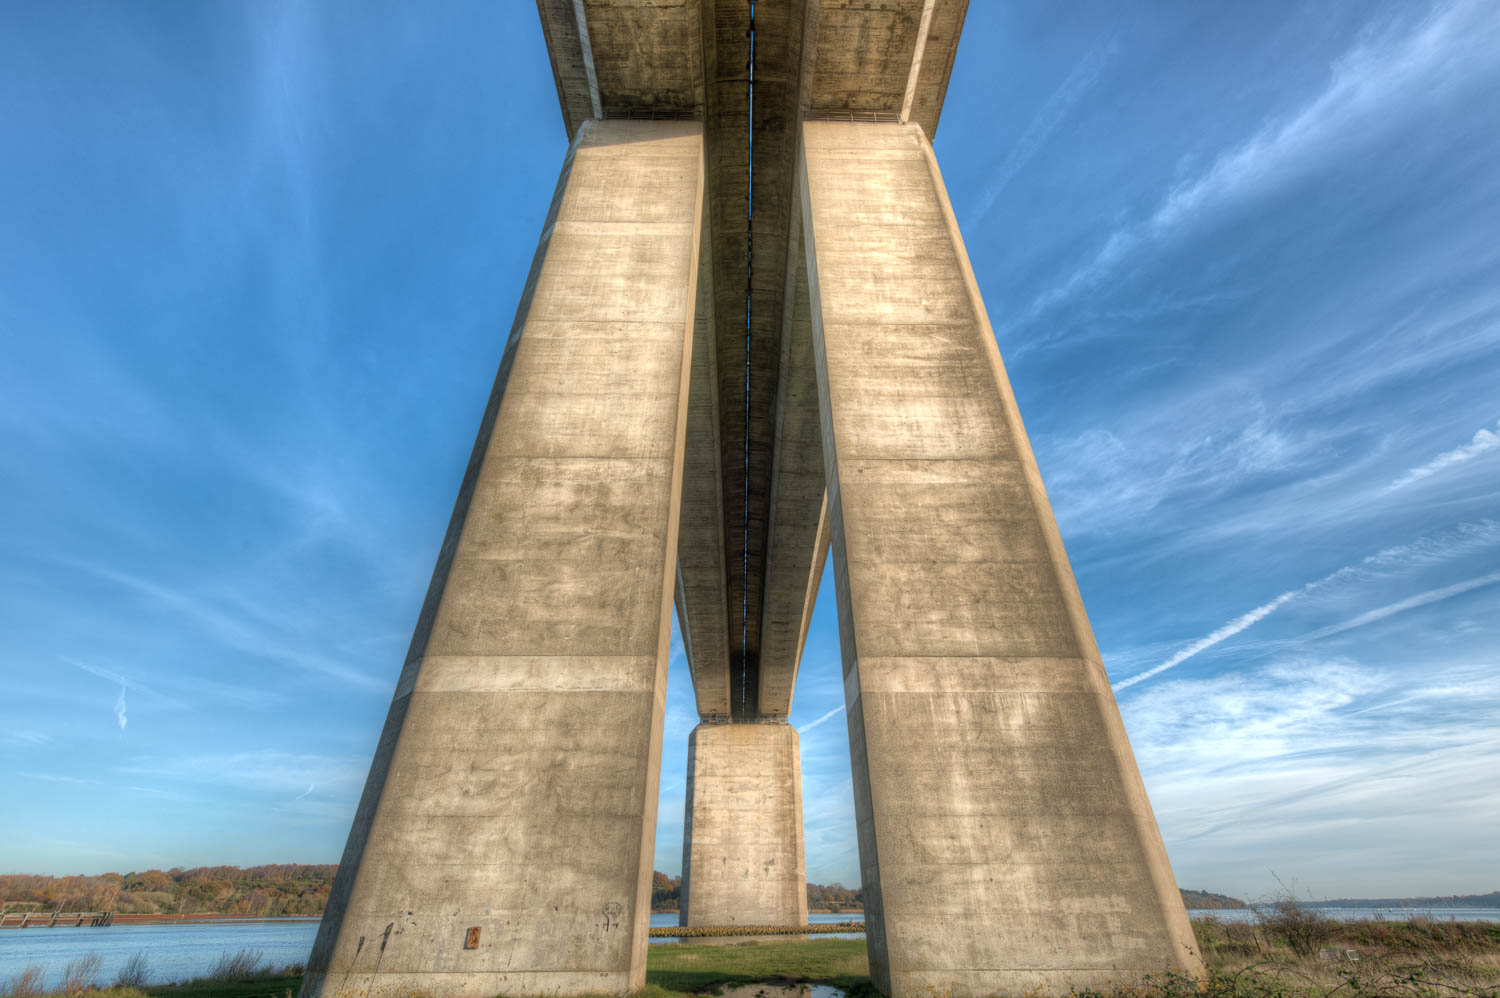 The Orwell Bridge Standing Tall